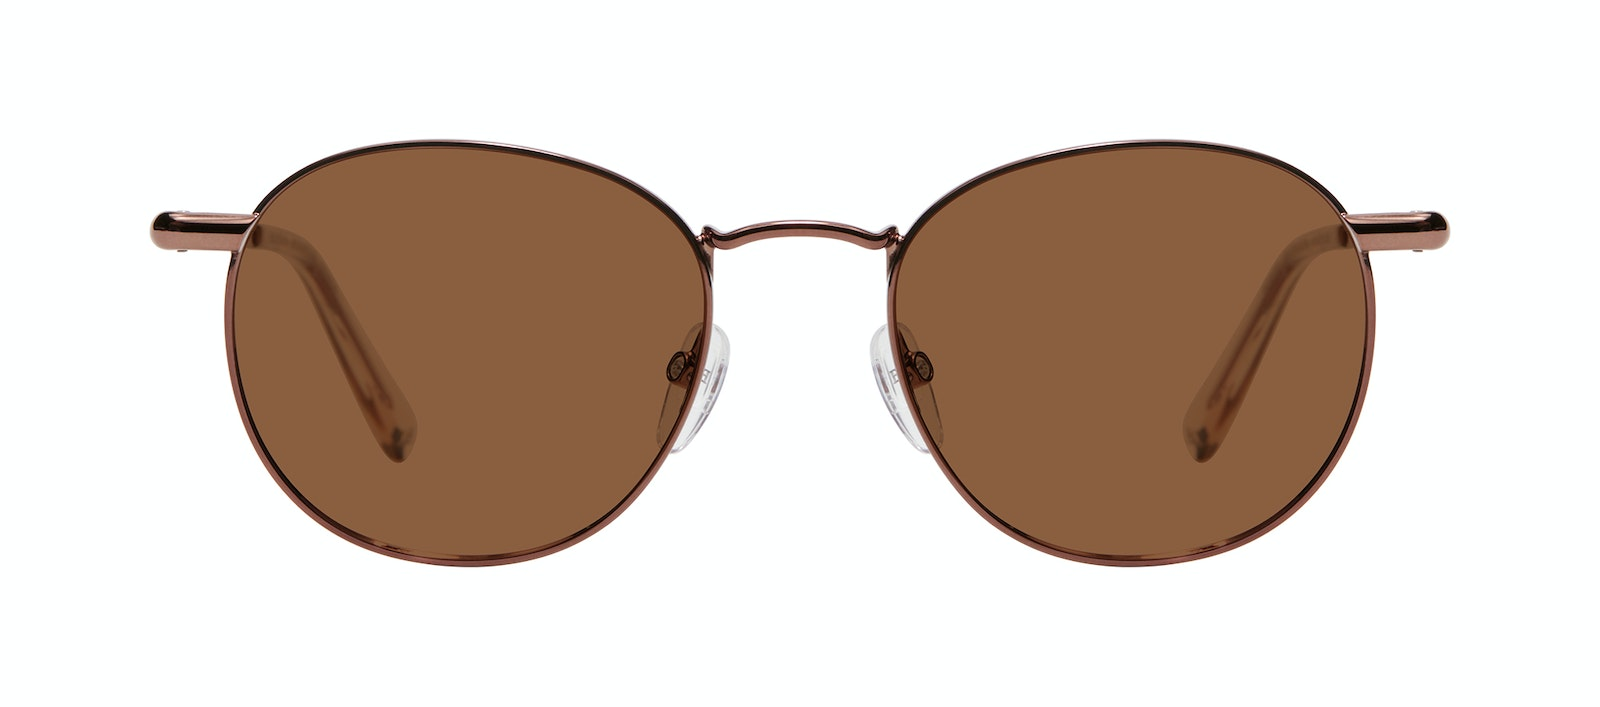 Affordable Fashion Glasses Round Sunglasses Women Divine L Copper Front